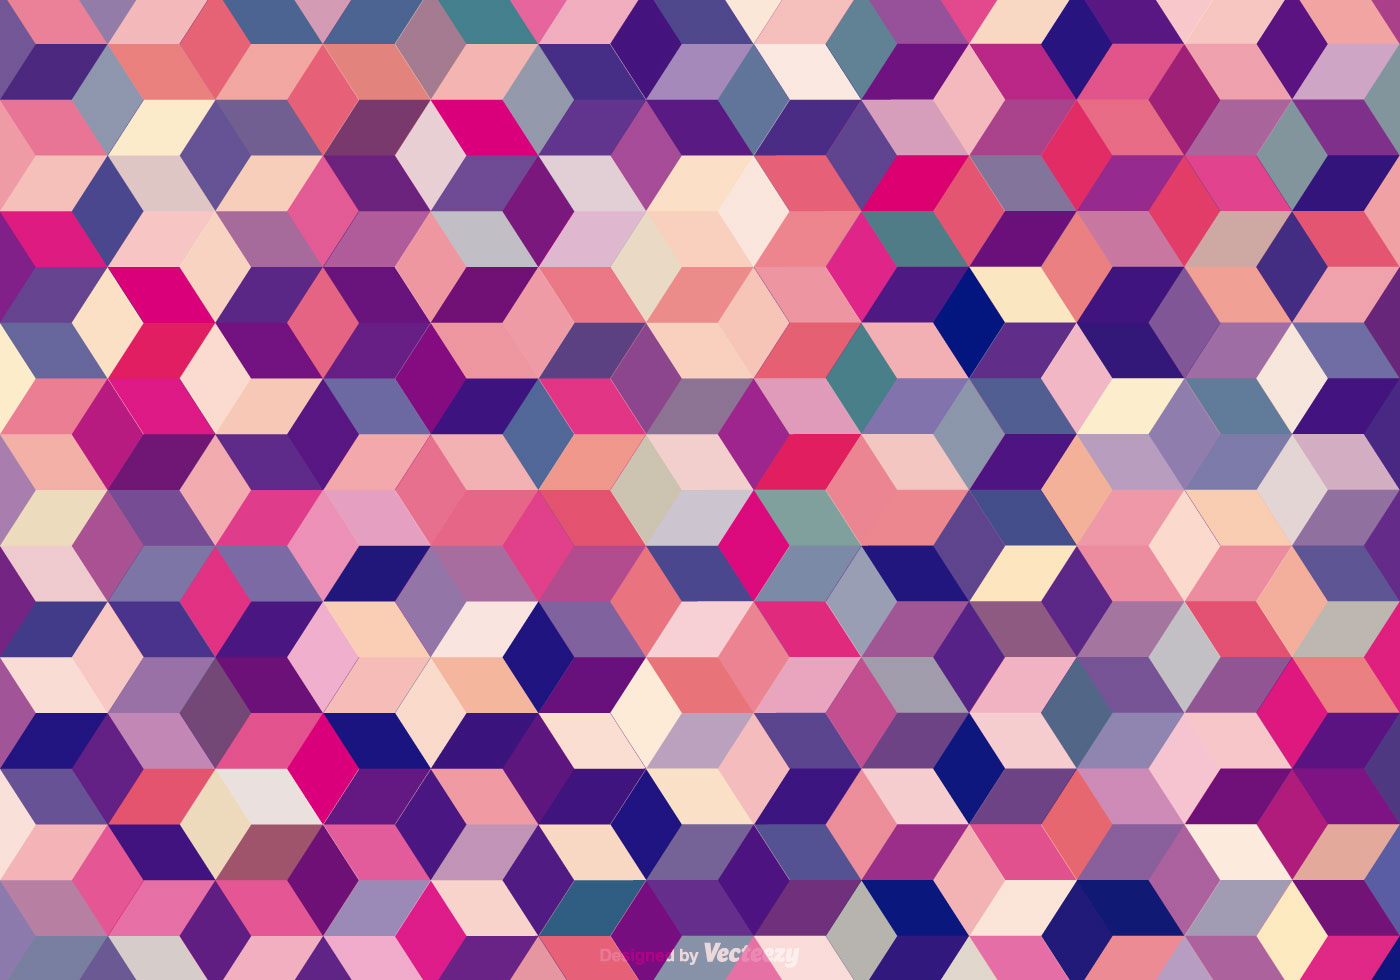 Abstract Colored Cubes Background